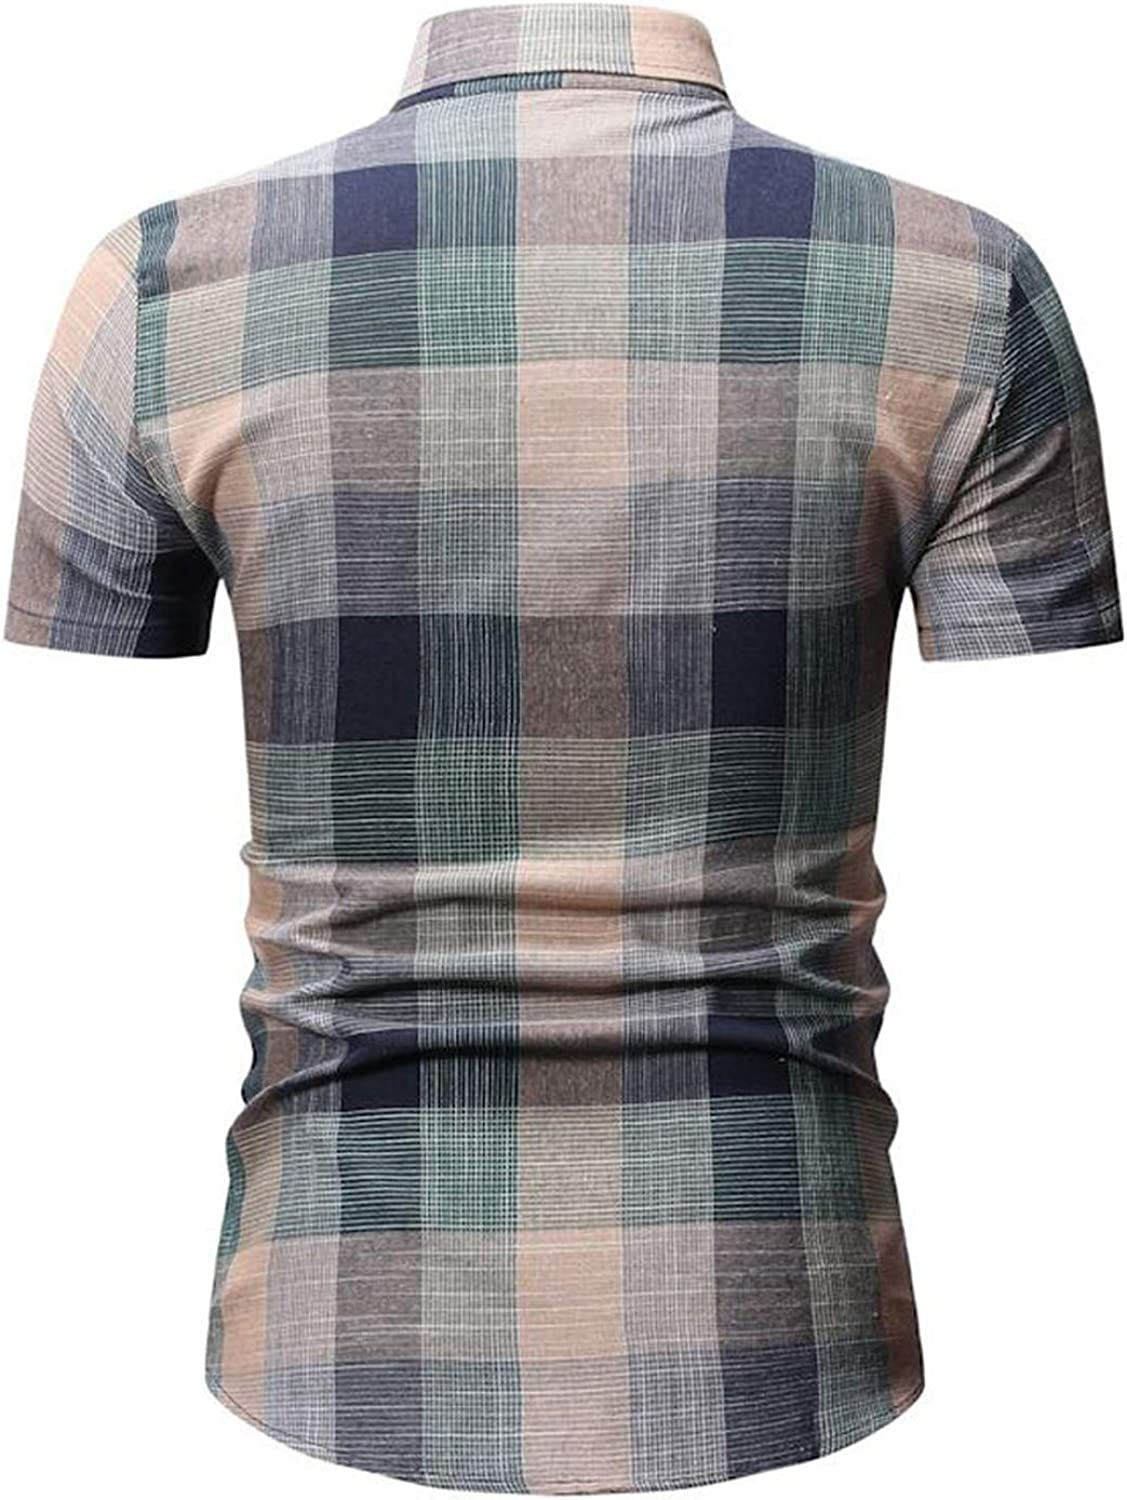 Summer Mens Shirt Short Sleeve Plaid Fashion New to Lapel Casual Tops,Red,XL,United States